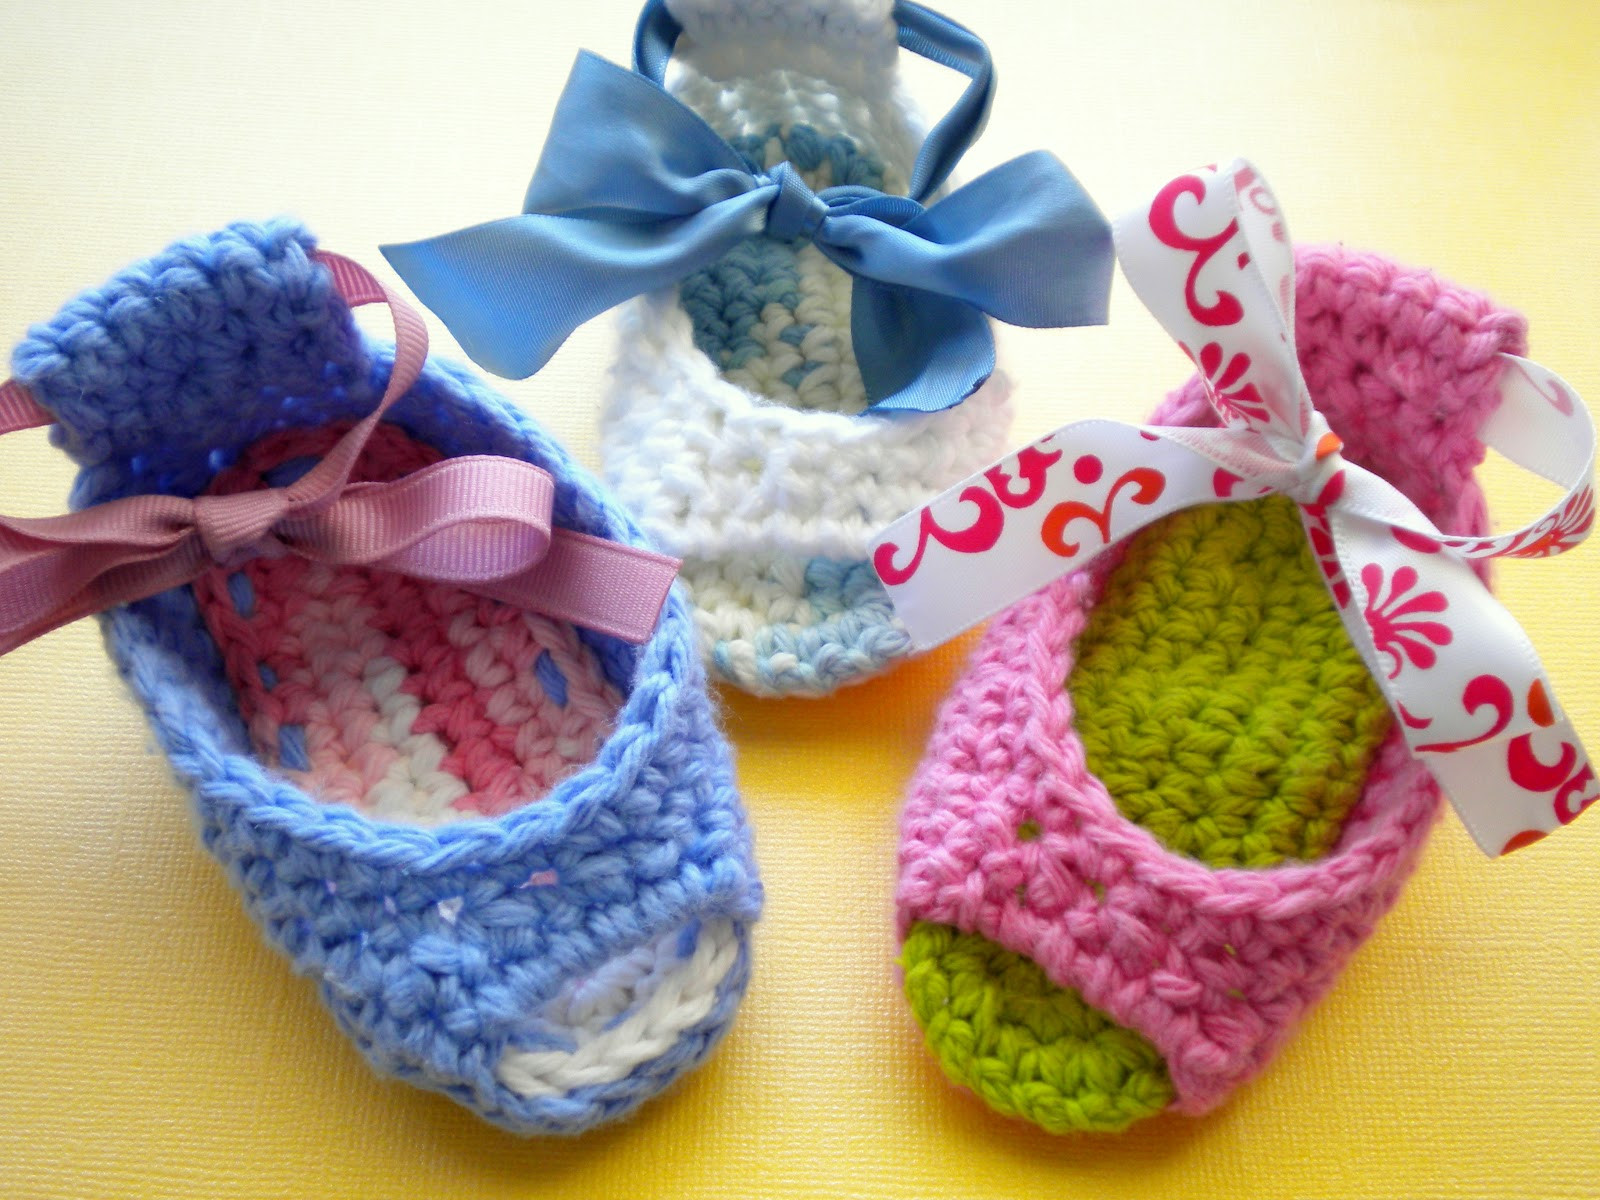 New Annavirginia Fashion Piggy Peeps Baby Shoes Pattern Crochet Baby Girl Shoes Of Amazing 43 Images Crochet Baby Girl Shoes